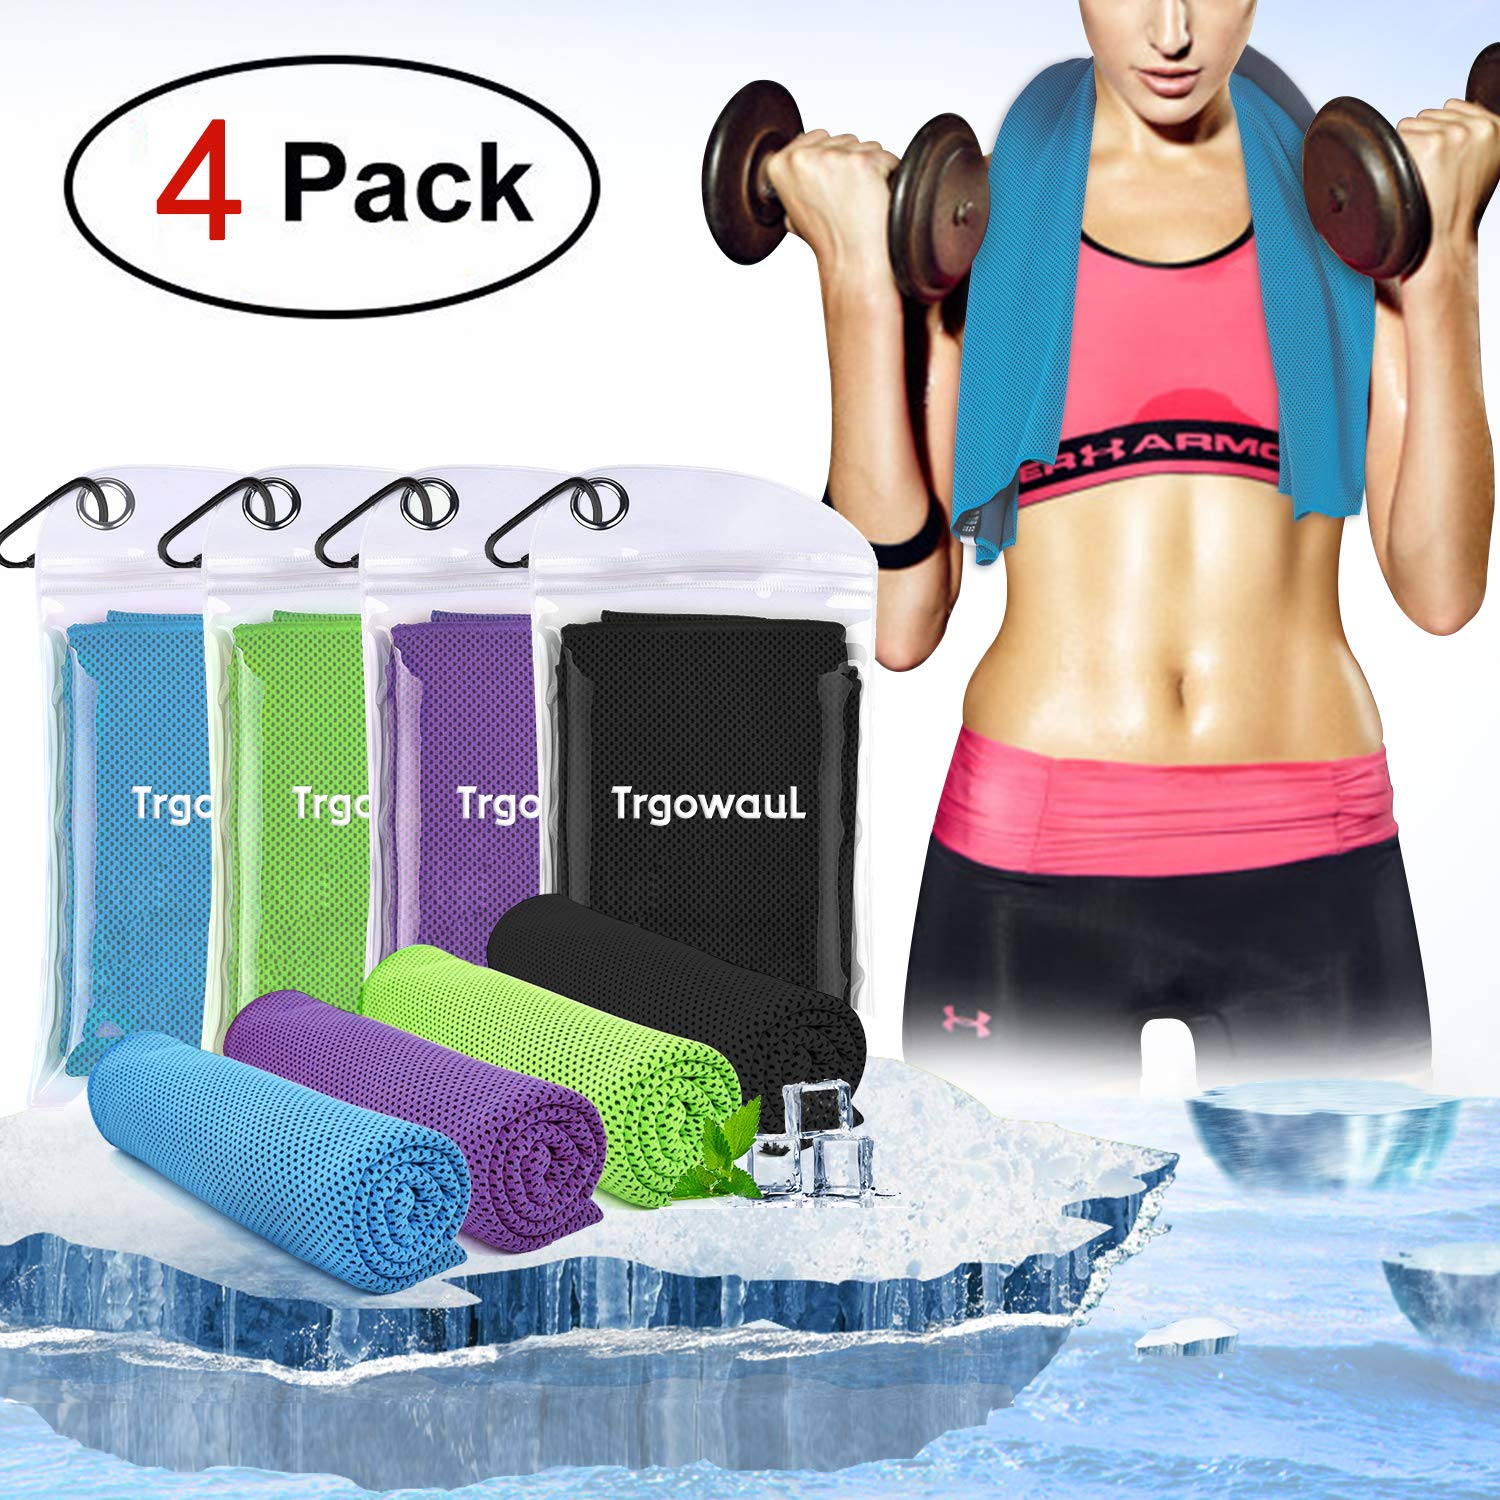 Trgowaul Cooling Towels, 40 x 12 Inches, Ice Towel, Soft Breathable Chilly Towels, Microfiber Towel for Yoga, Sport, Running, Gym, Workout,Camping, Fitness, Workout